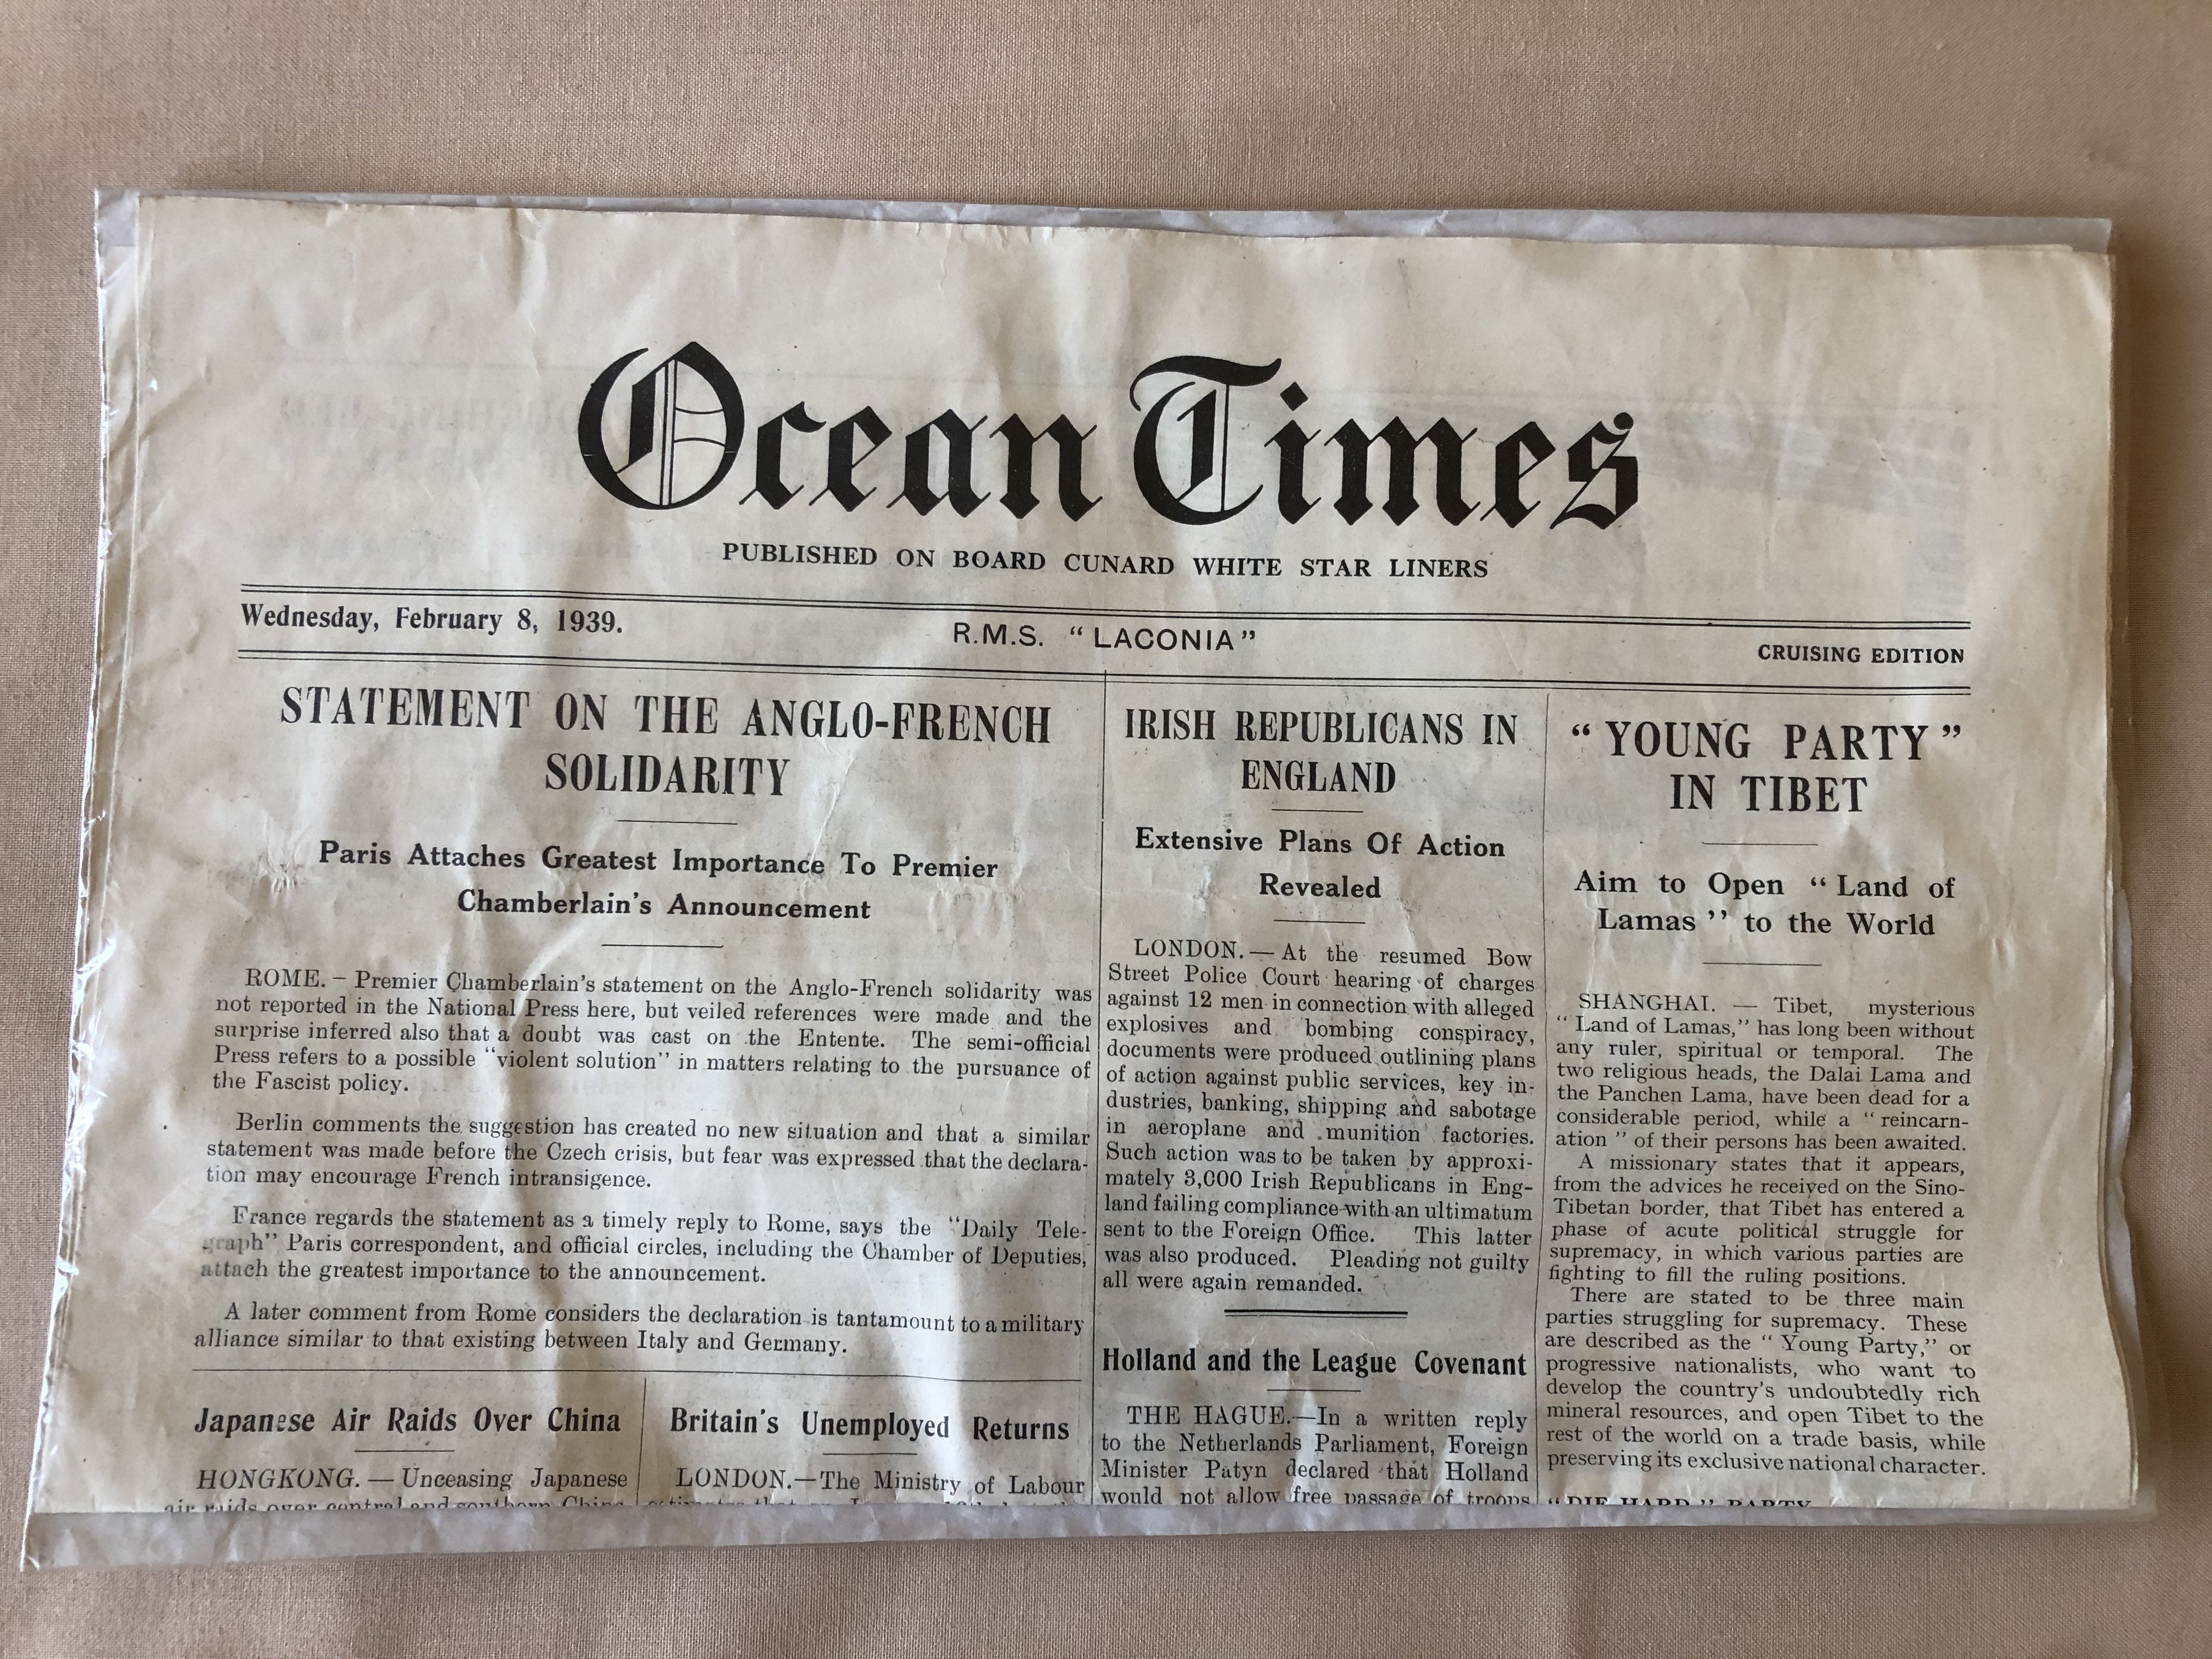 VERY RARE TO FIND EDITION OF THE SHIP NEWSPAPER THE 'OCEAN TIMES' FROM THE RMS LACONIA